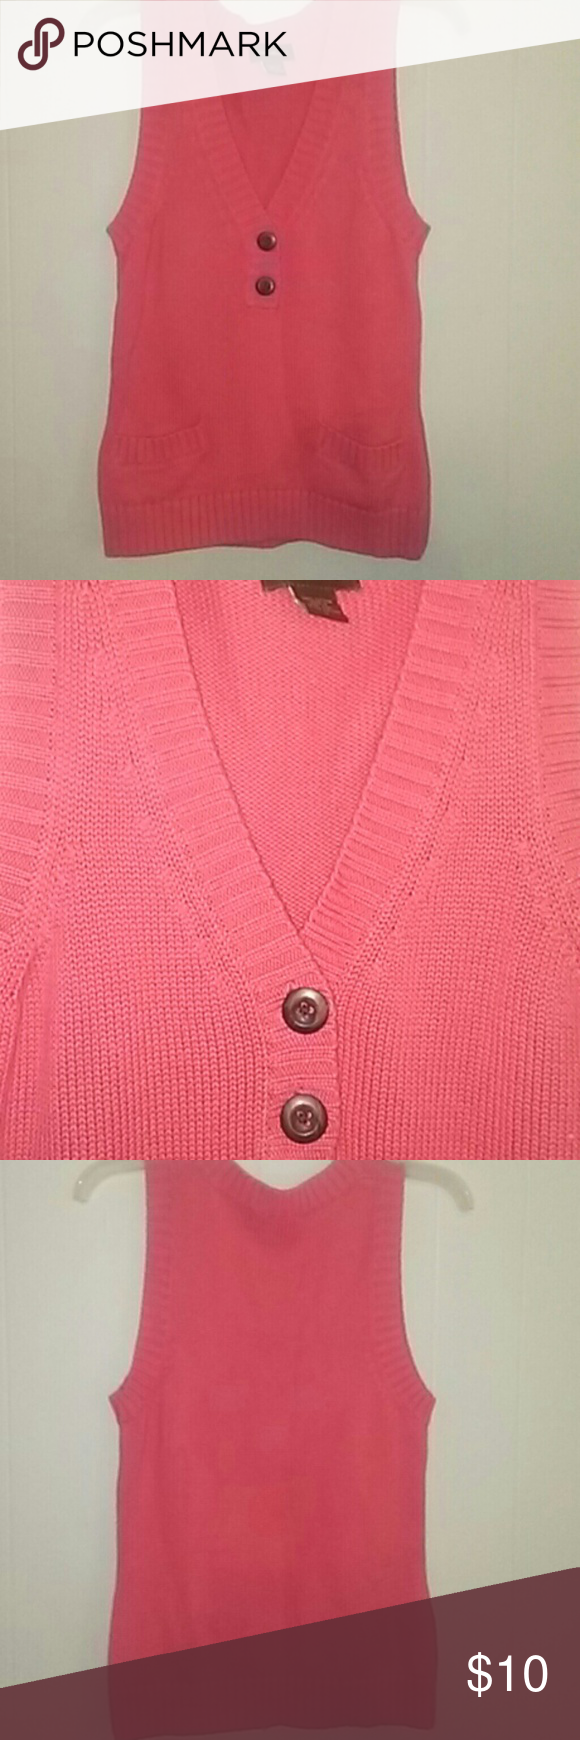 Eddie Bauer small peach sweater vest It is sleeveless,vneck, has two front buttons and two front small pockets. It is a size small in juniors/  women's. It is in great condition and great for spring.  CA# 00665 Eddie Bauer Sweaters V-Necks